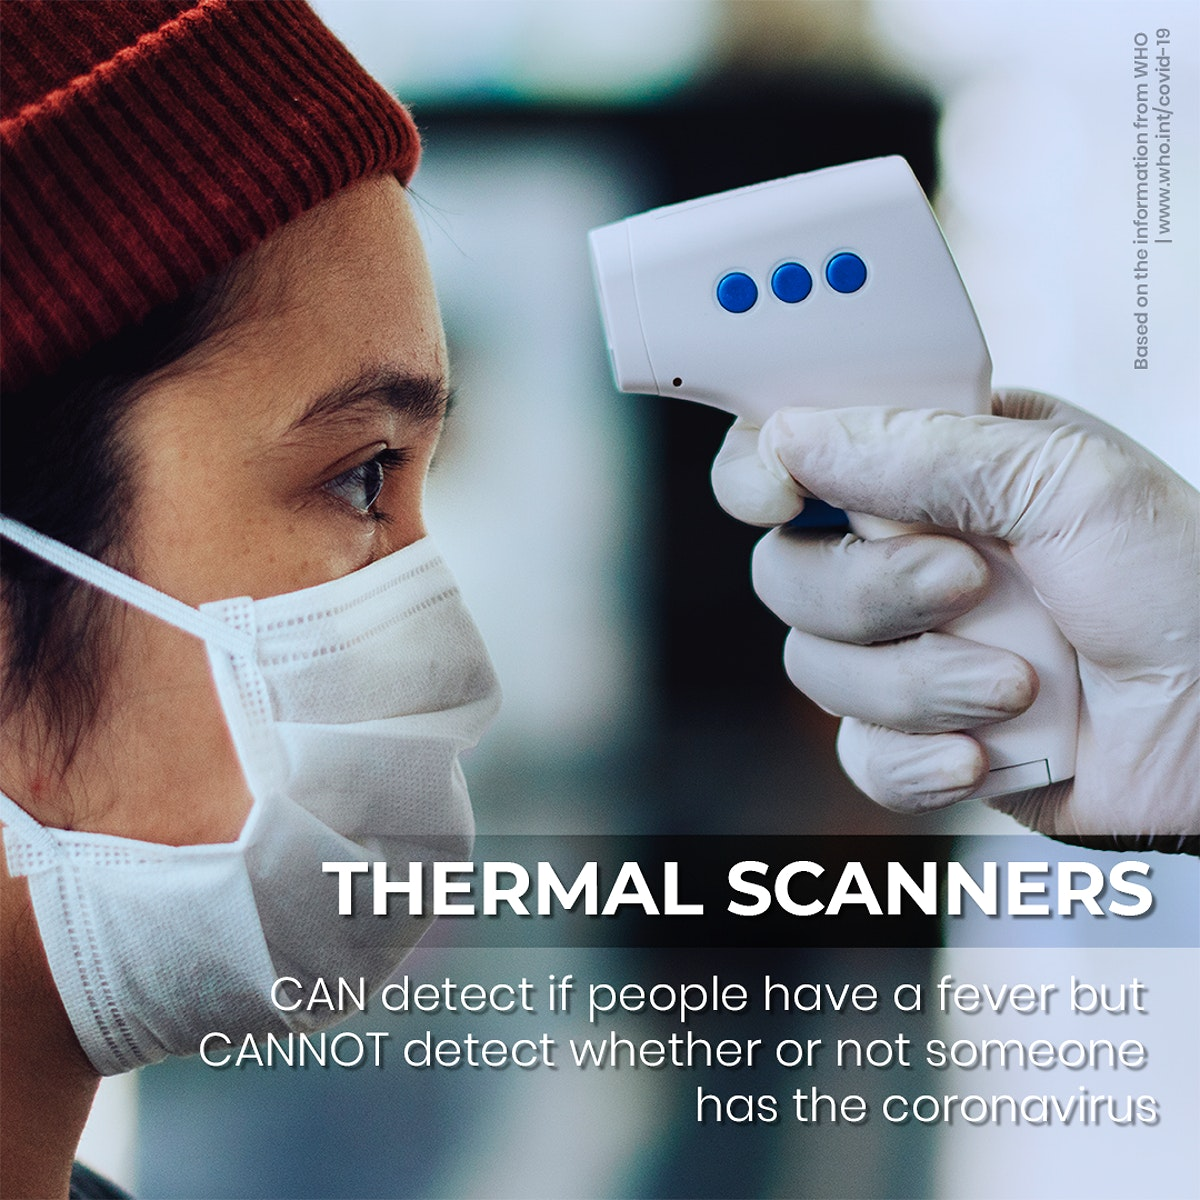 Thermal scanners cannot detect asymptomatic cases information by WHO psd mockup